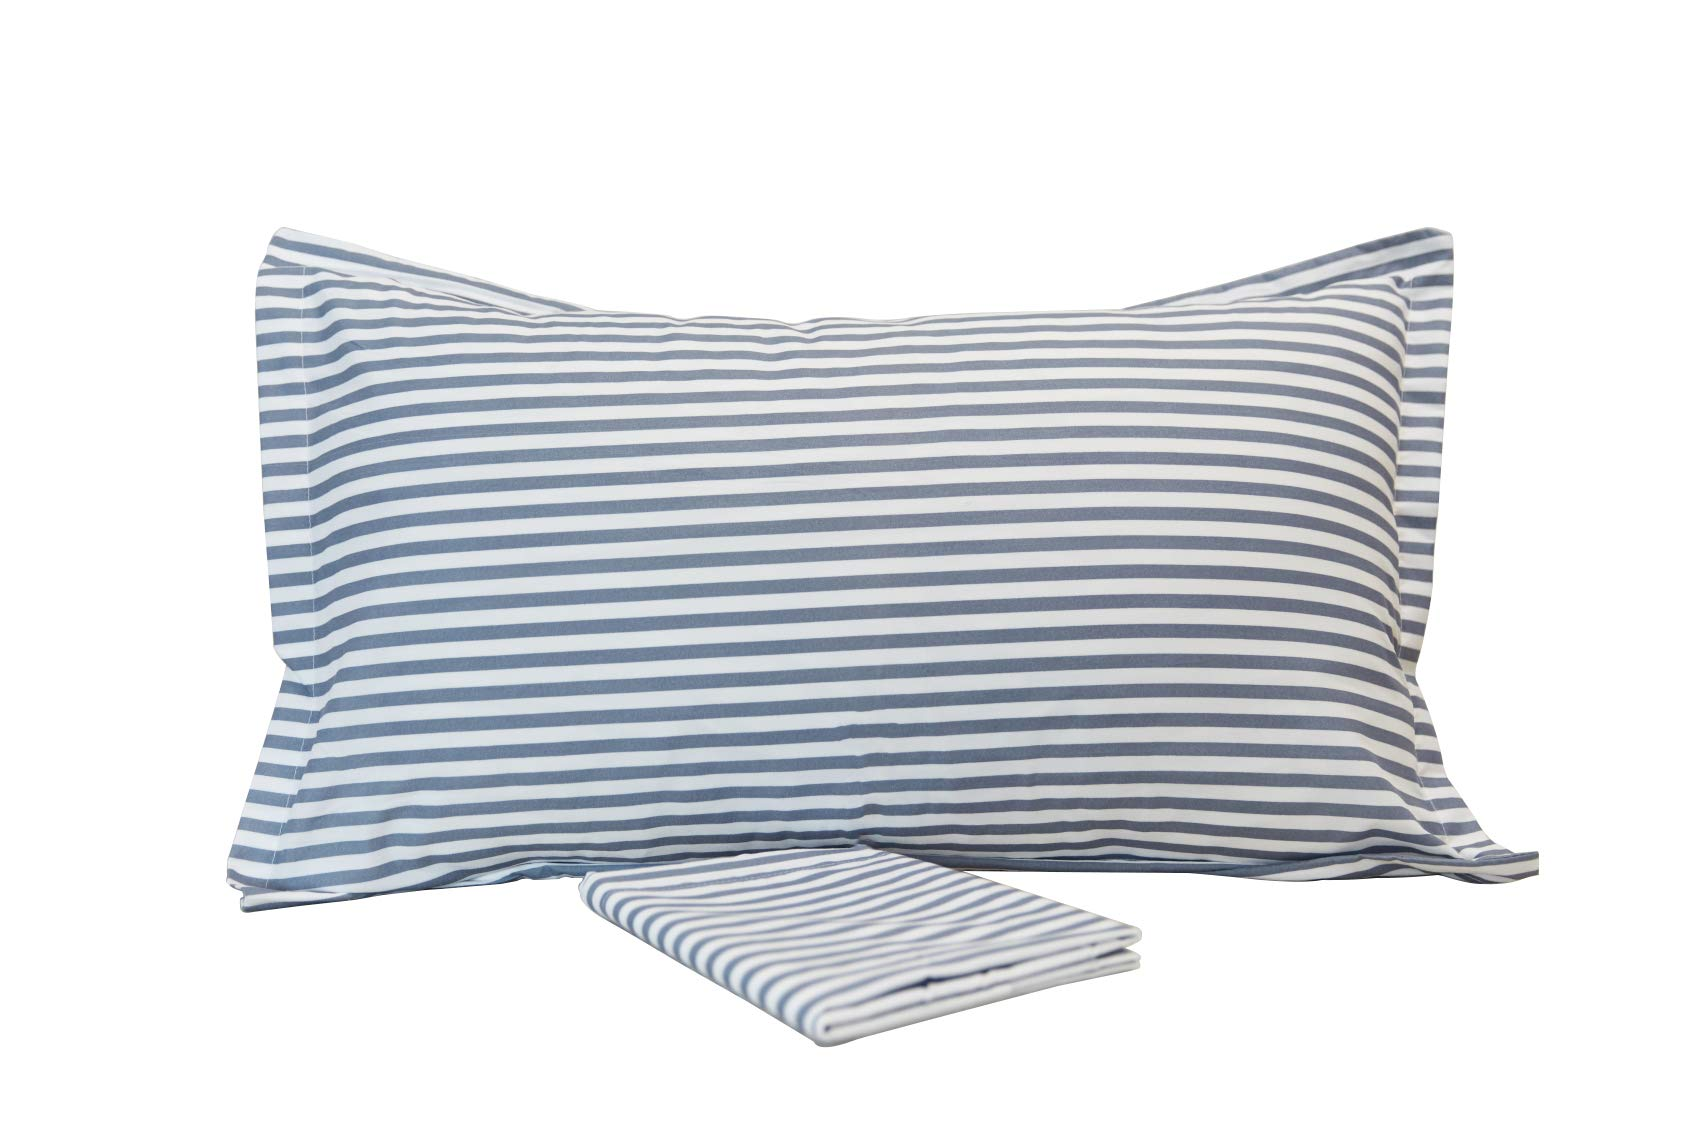 LT 100% Brushed Microfiber 2 Pack Pillowcases - King Size, White And Blue Stripes Striped Pillow Shams Covers (20x40inches) (12, King size)